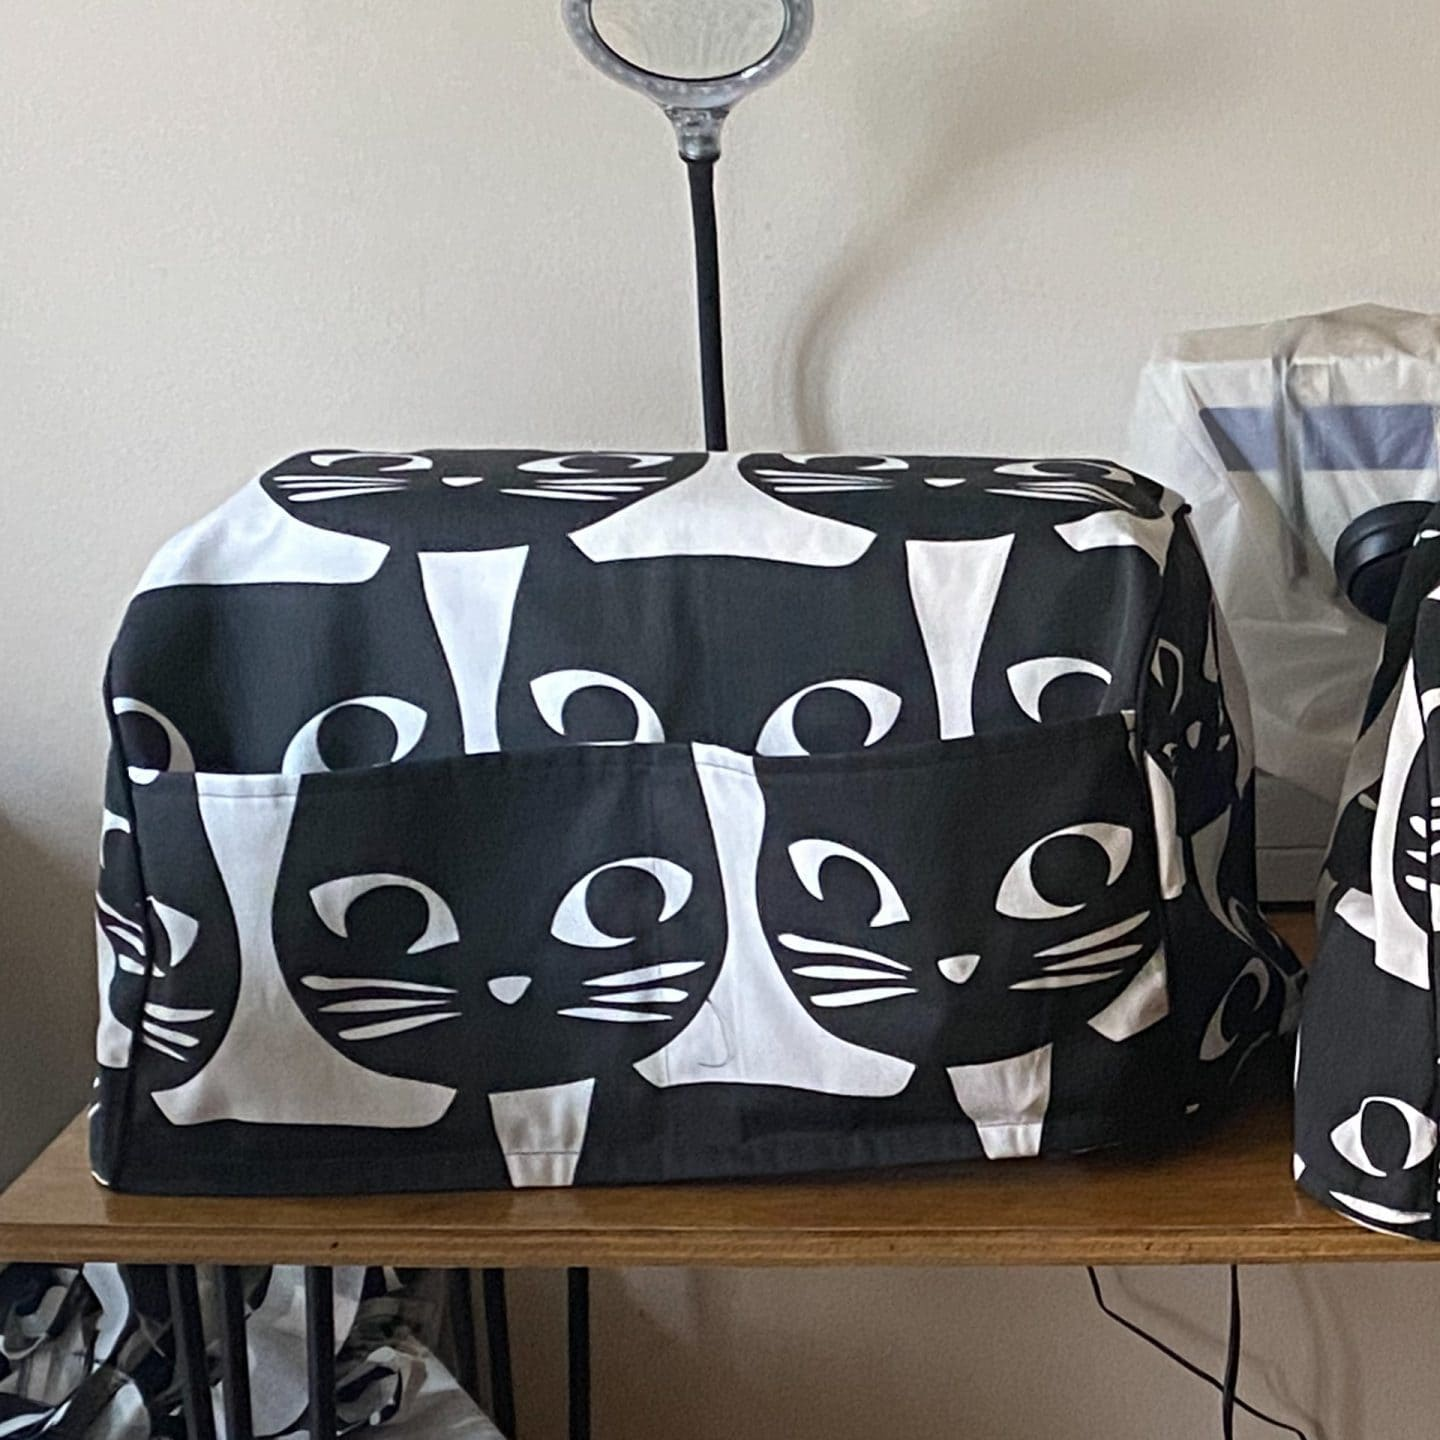 Image of a sewing machine with a cover made of canvas with big black cat print and black piping detail